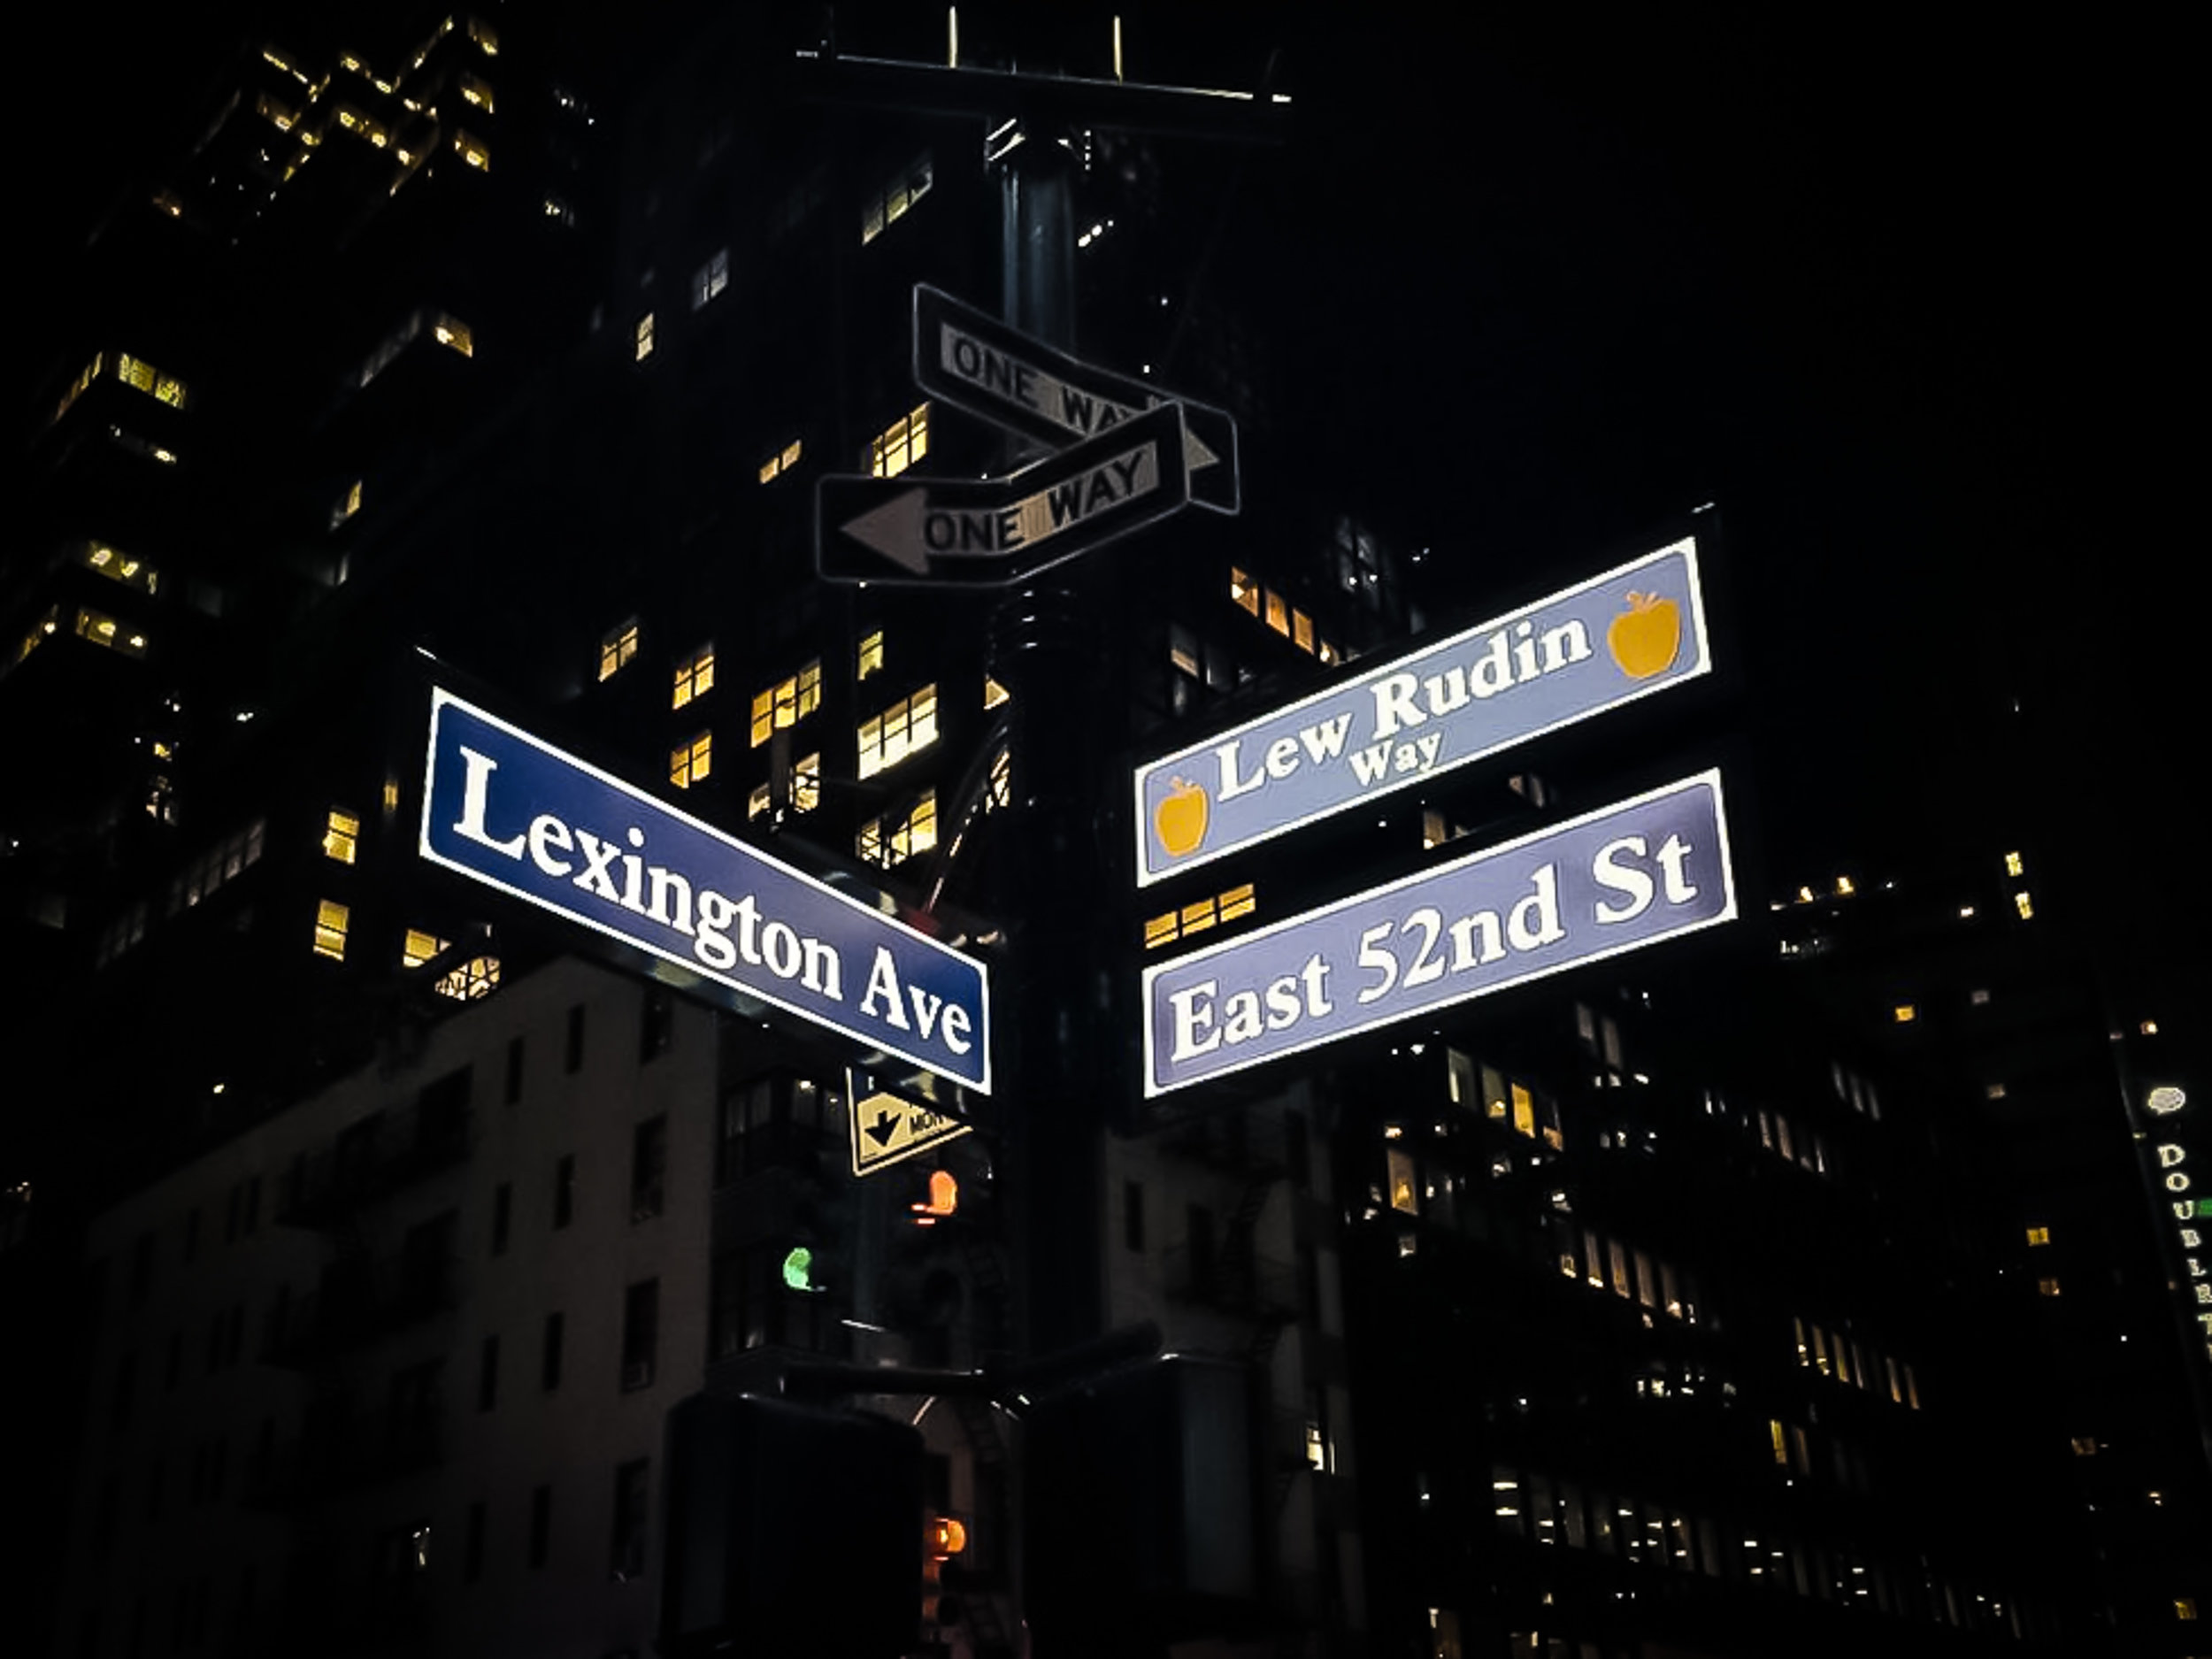 The famous spot: Lexington Avenue between 51st and 52nd Streets, in New York City